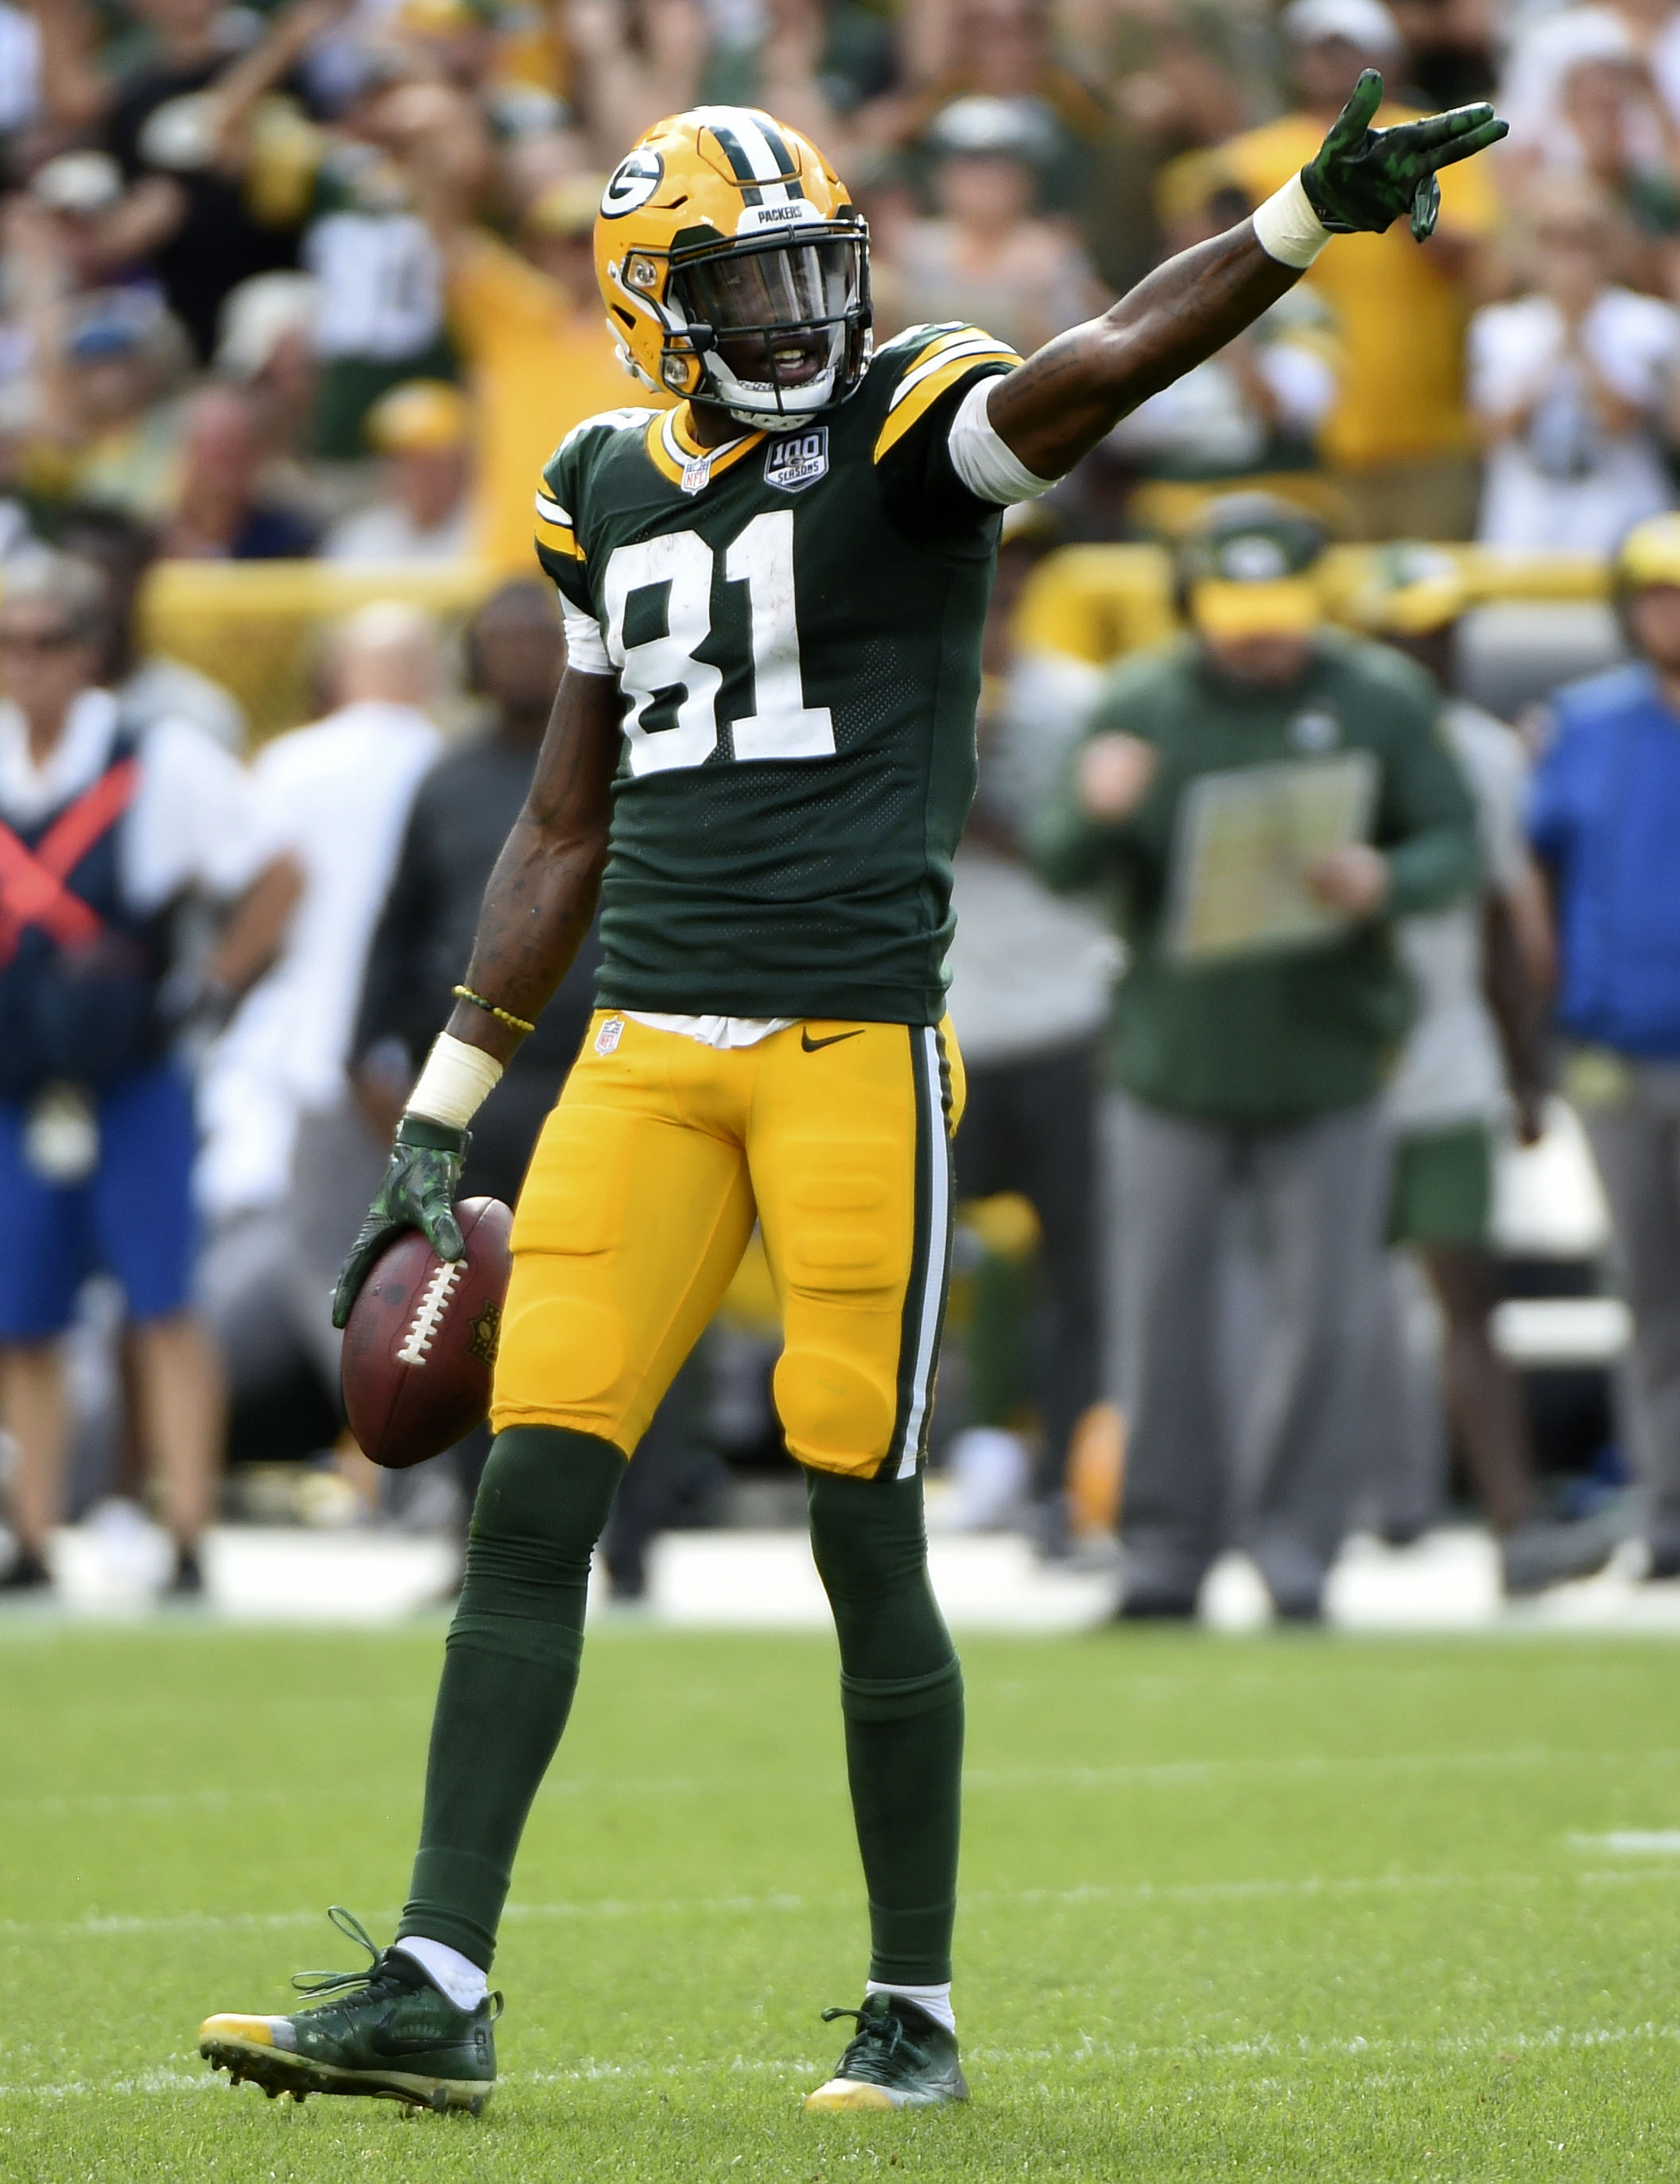 1b42a80ab19 The Packers have tendered restricted free agent wide receiver Geronimo  Allison at the original round level